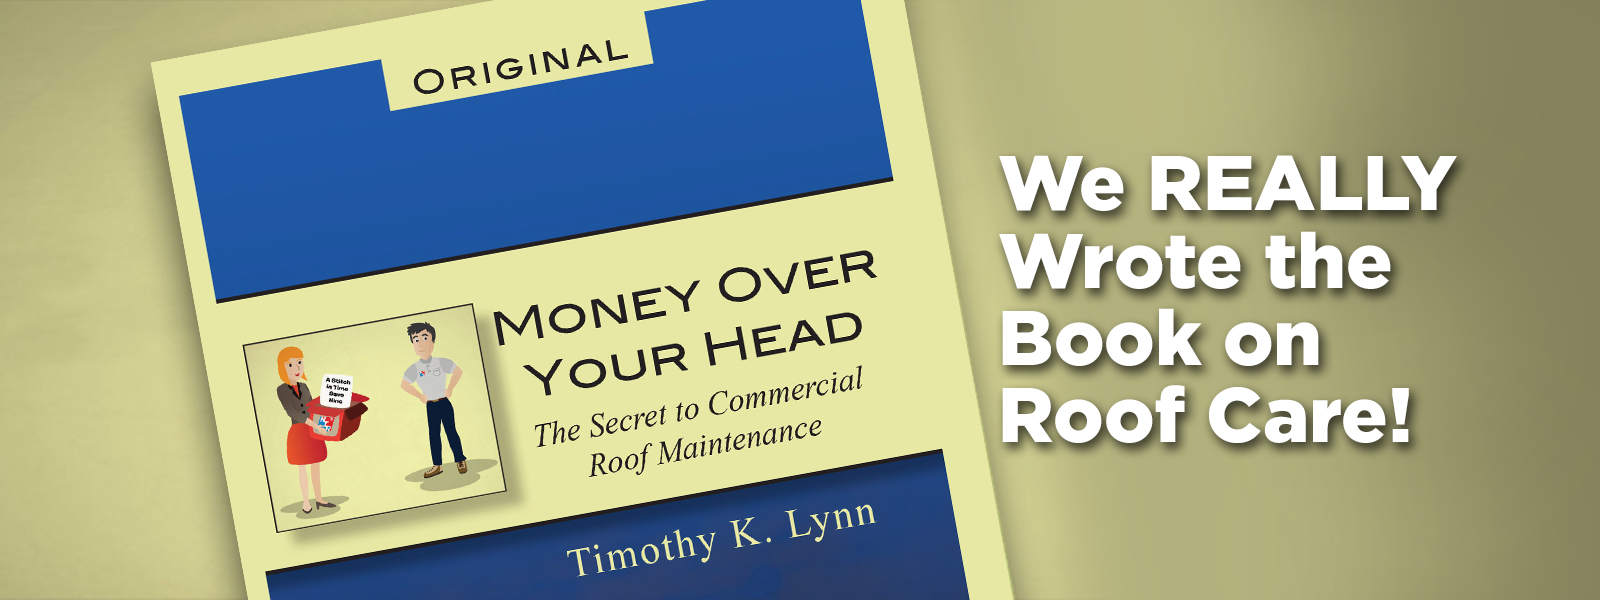 Roof Care Book